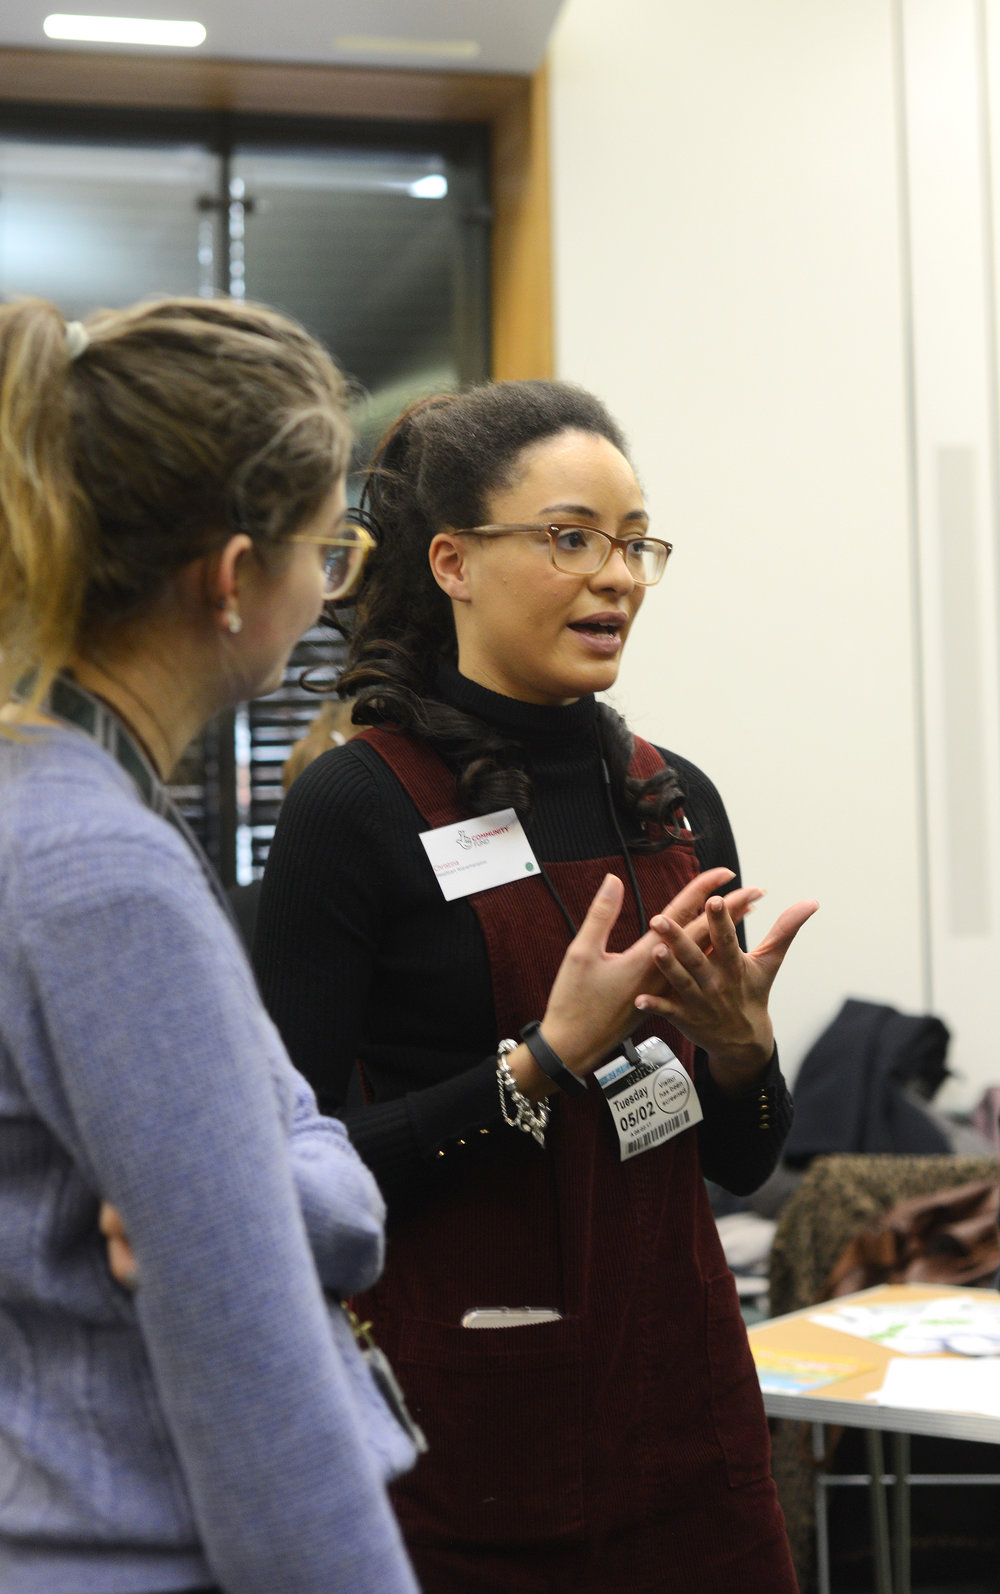 HeadStart Ambassador Cristina discussing young people's mental health support at the Parliamentary event.